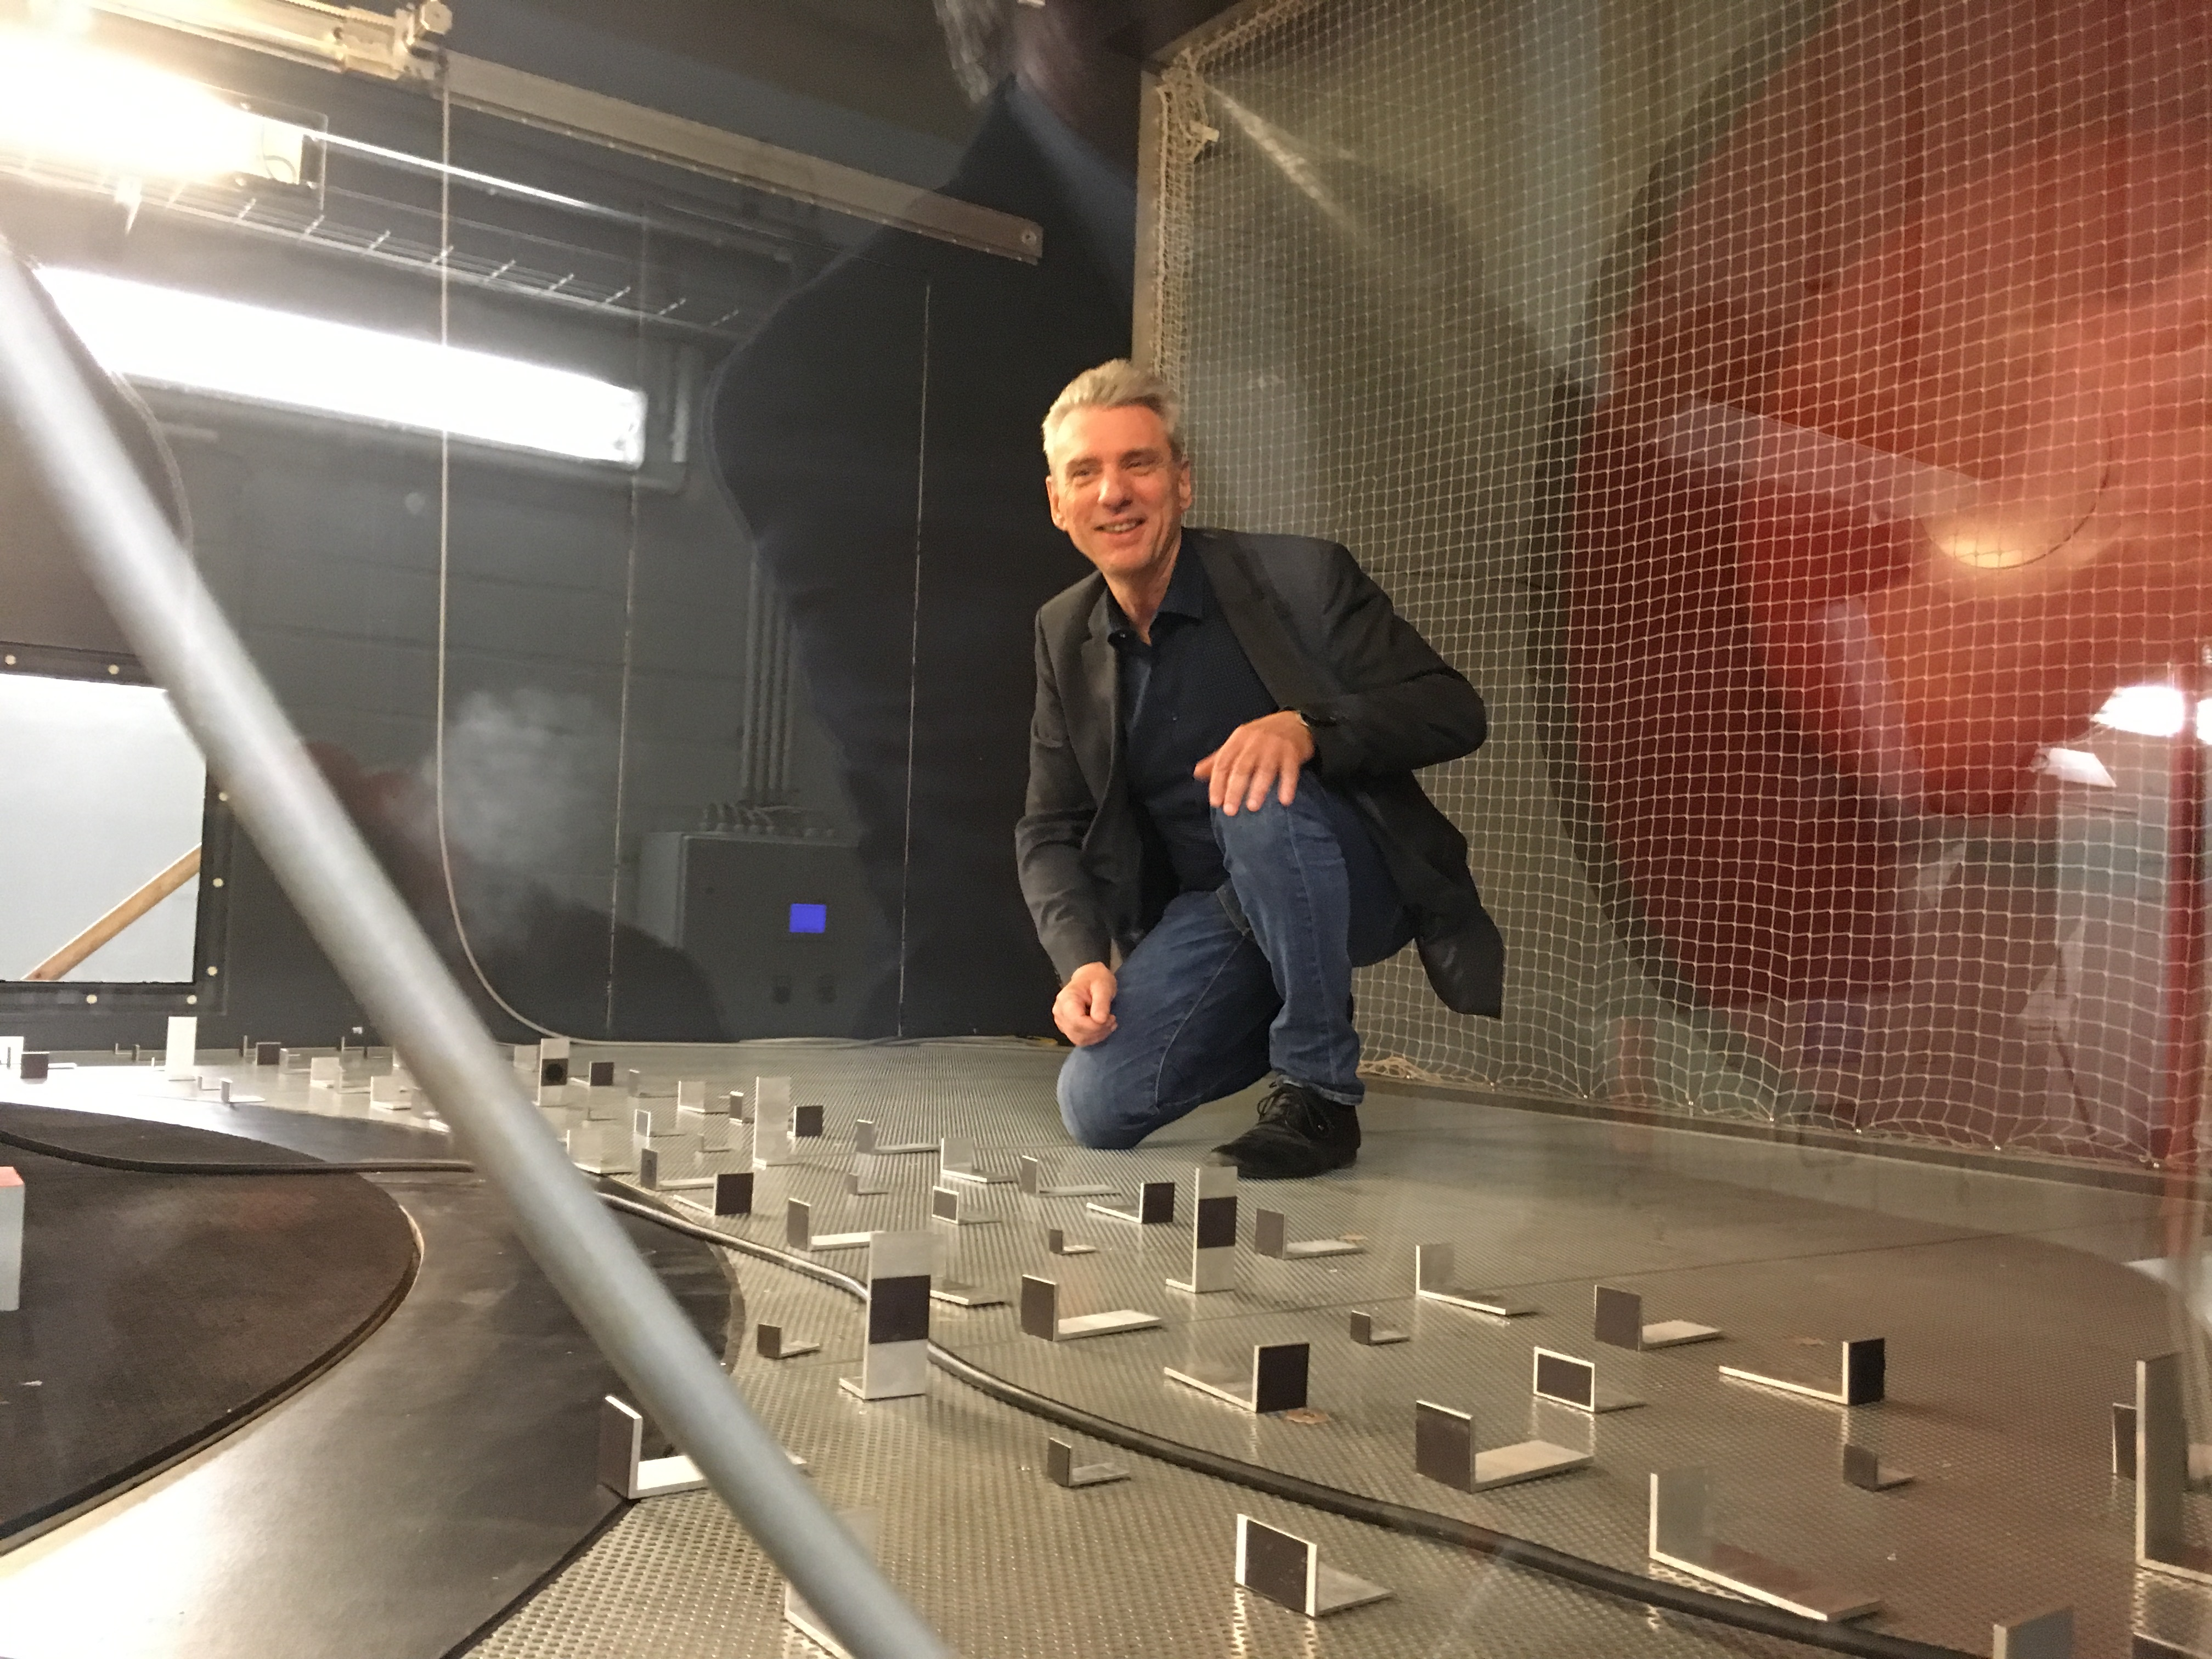 Dieter in wind tunnel